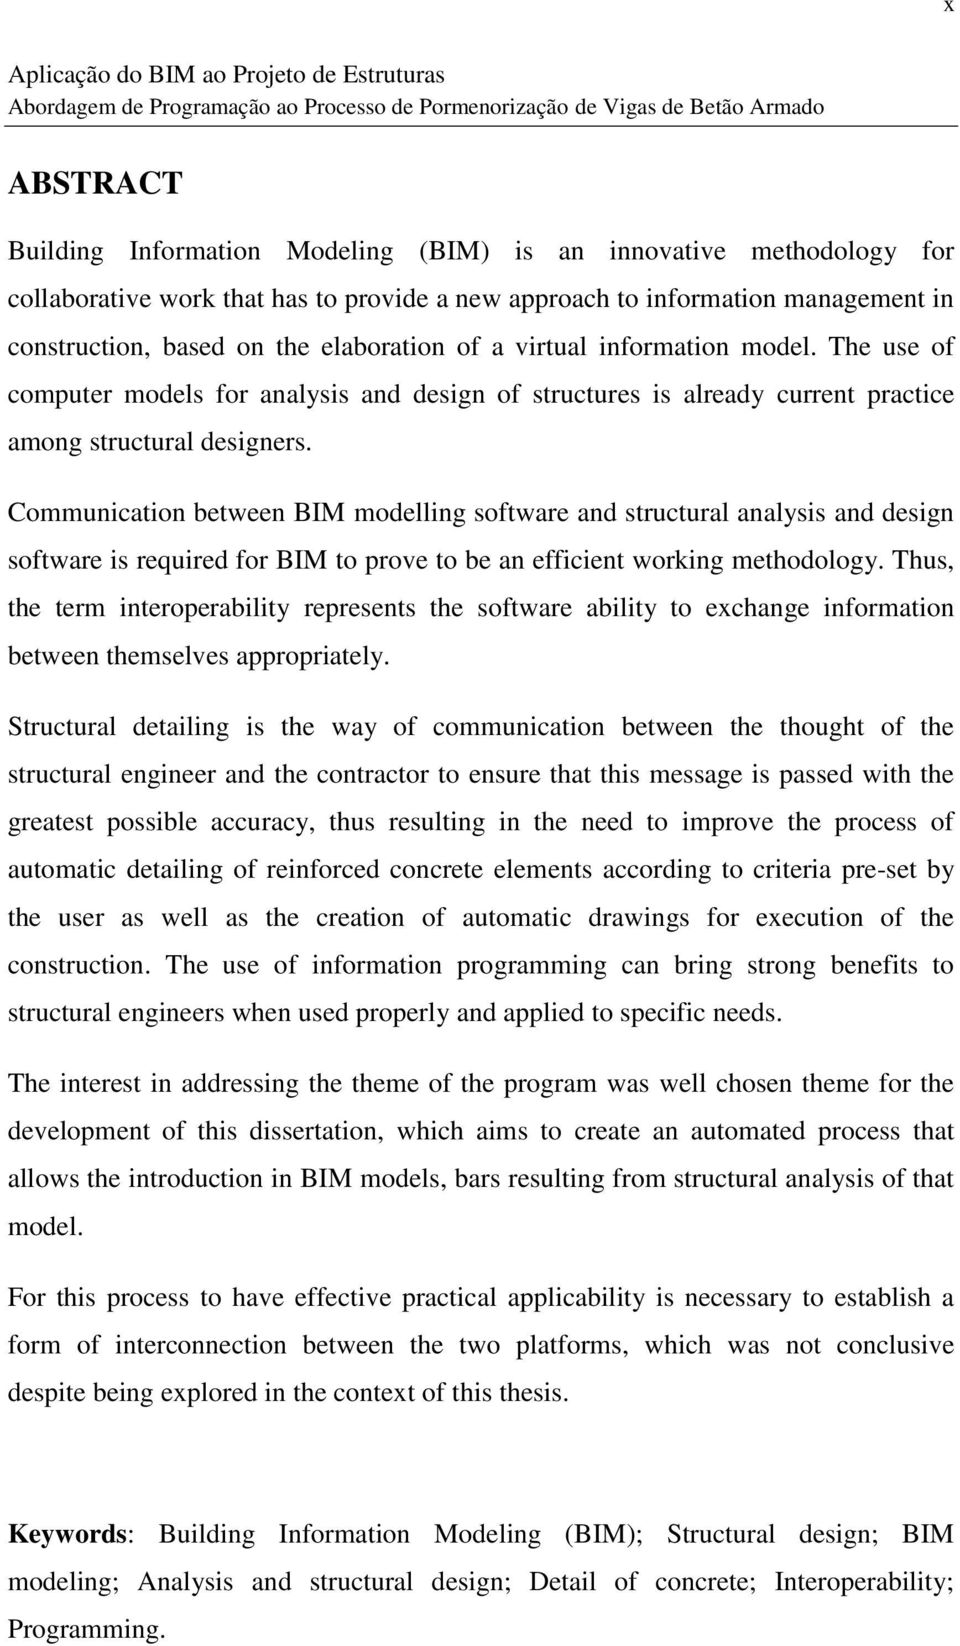 Communication between BIM modelling software and structural analysis and design software is required for BIM to prove to be an efficient working methodology.